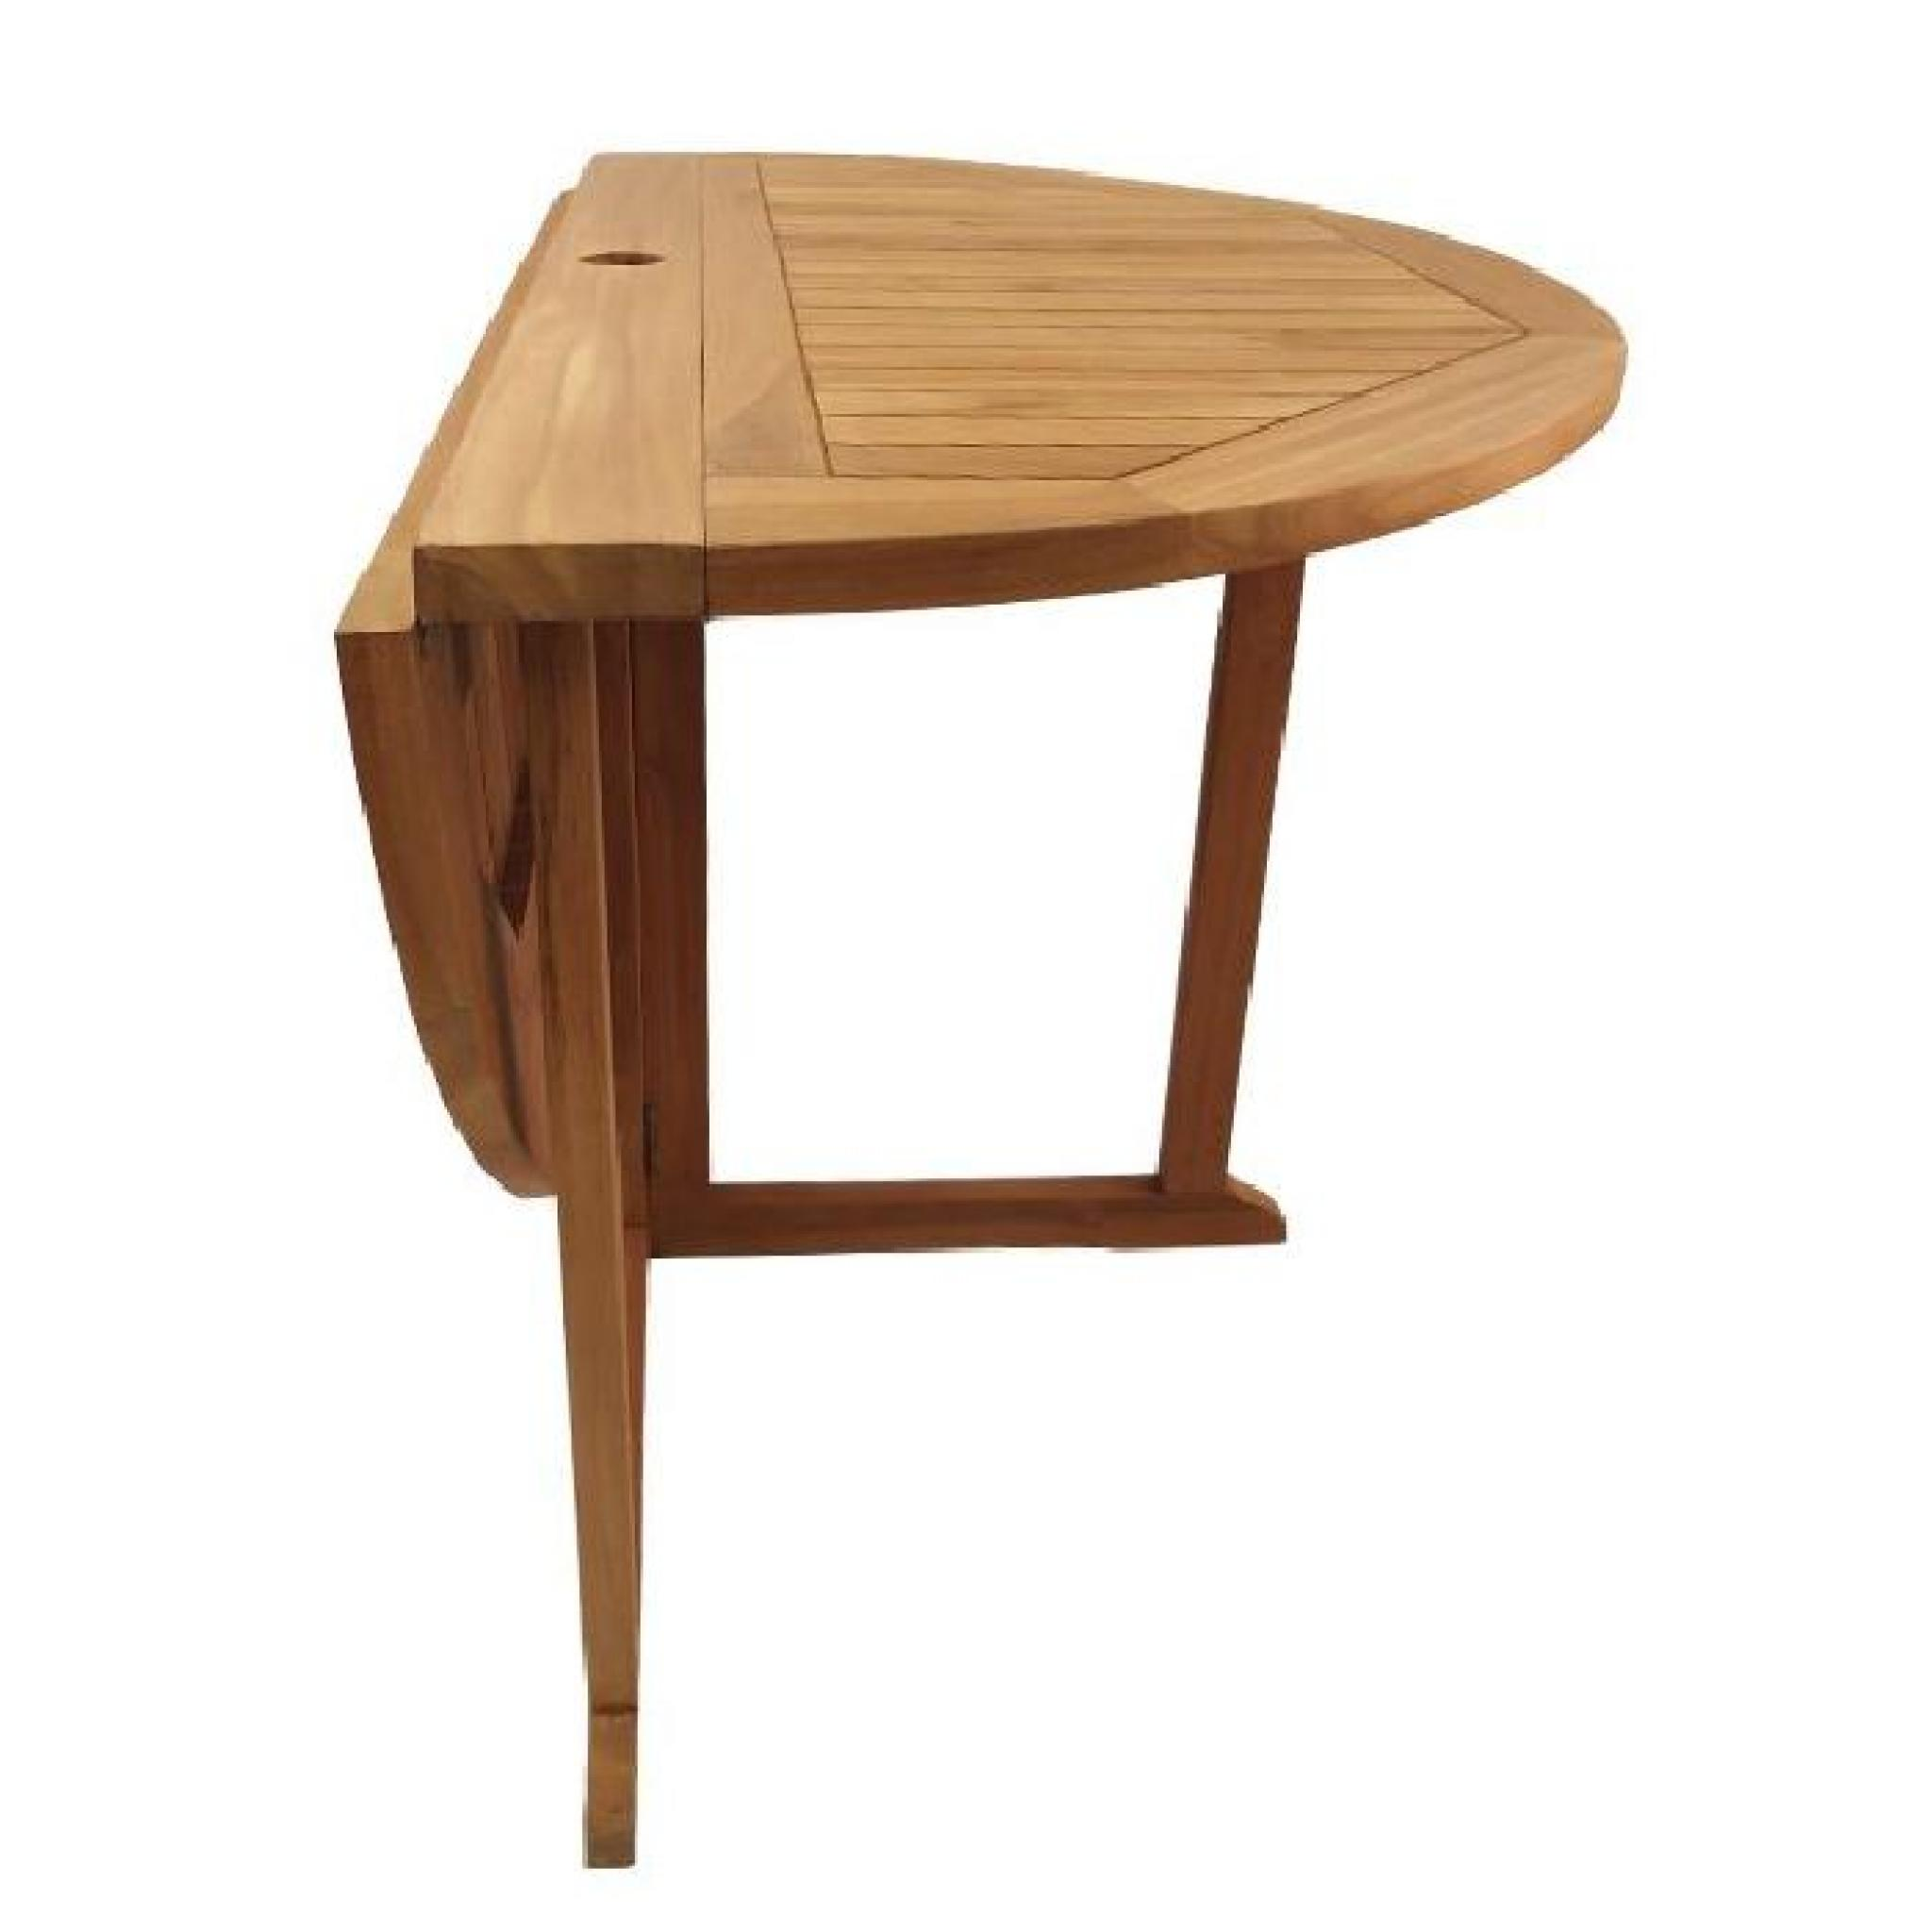 Table pliante ronde en teck Ecograde Domingue ø 120 cm